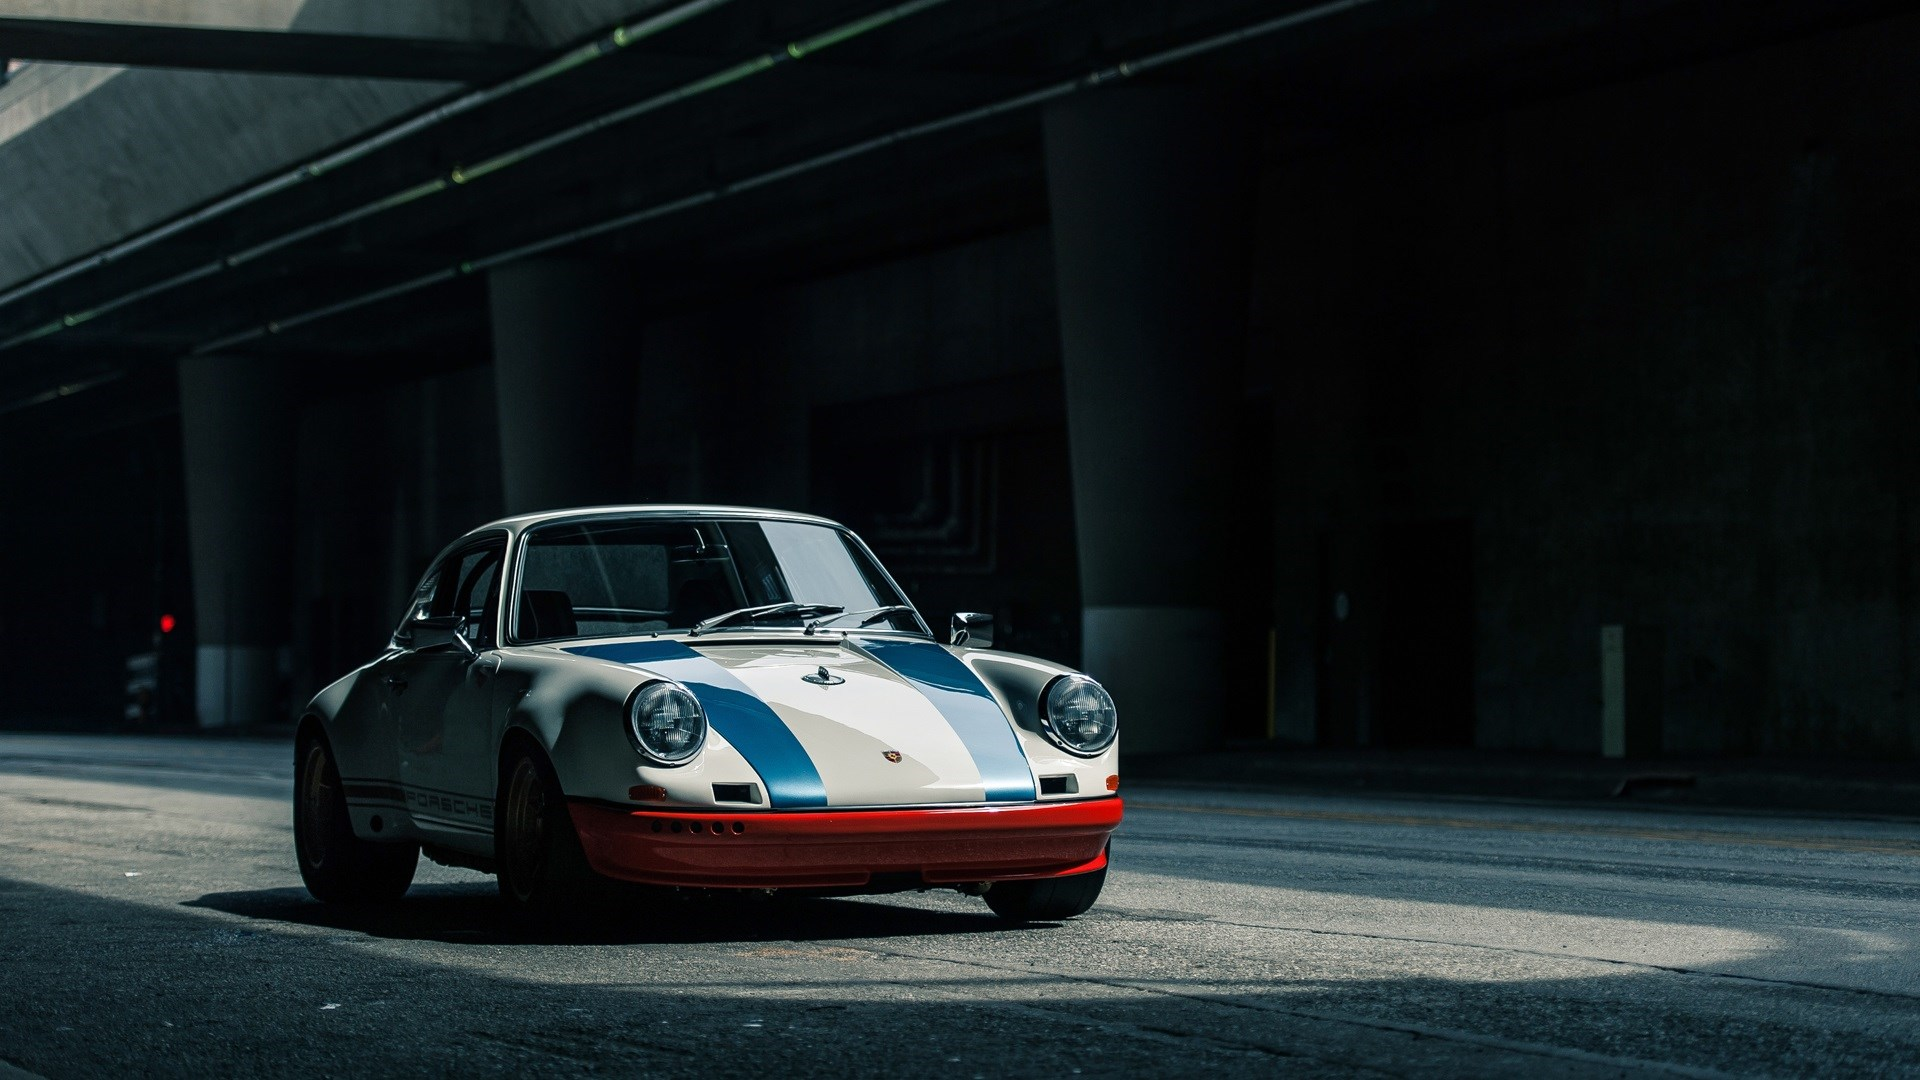 Porsche Wallpaper 403 Free Widescreen